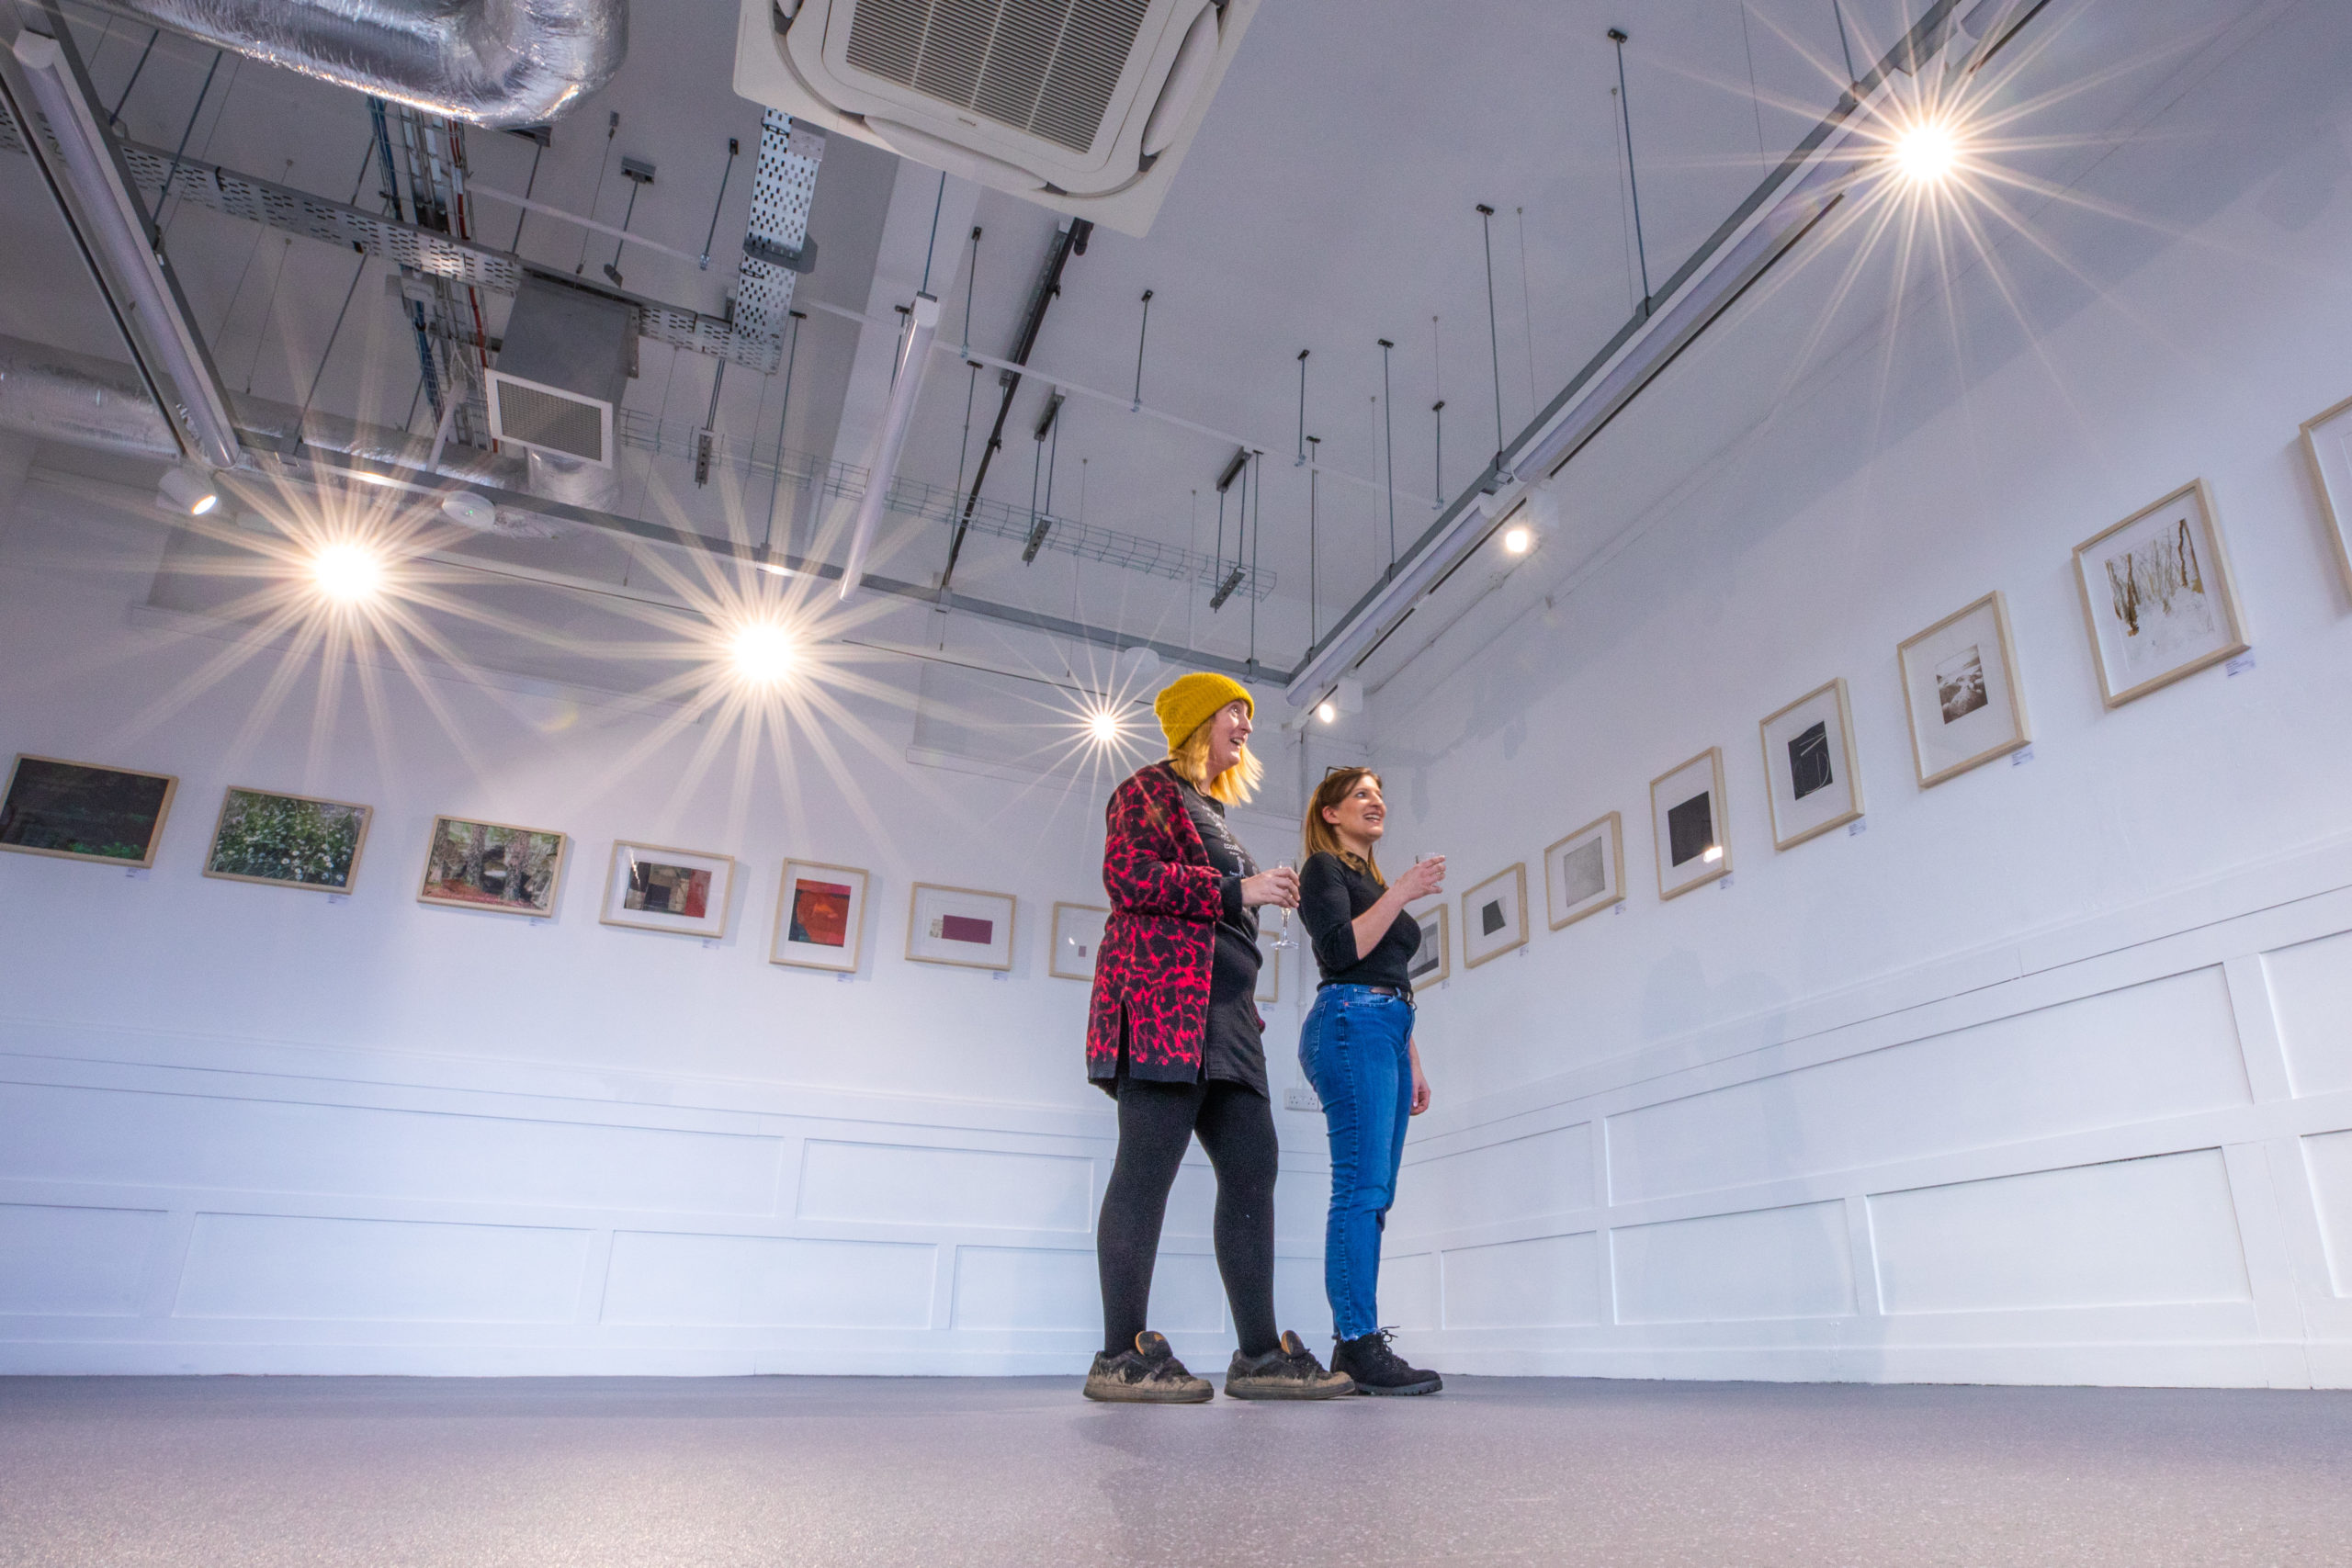 Tenants Sarah Marshall (left) and Pamela Atan (right) in an the 'Gannoch Project Space' at Perth Creative Exchange